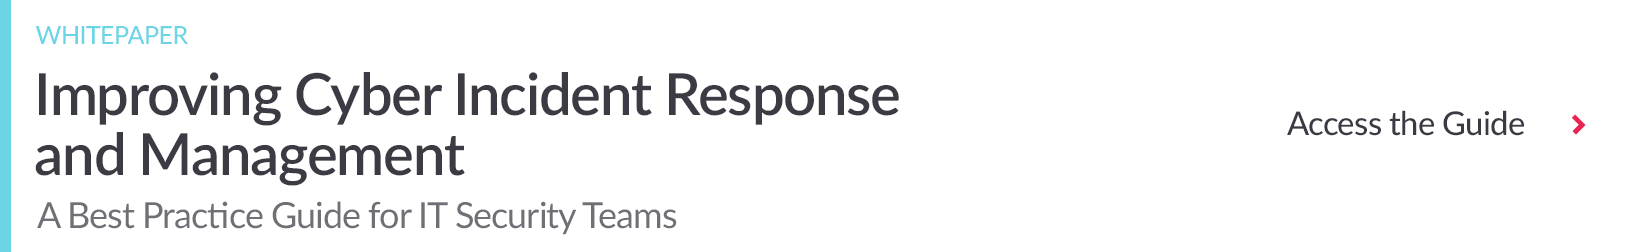 Download Guide to Improving Cyber Incident Response and Management